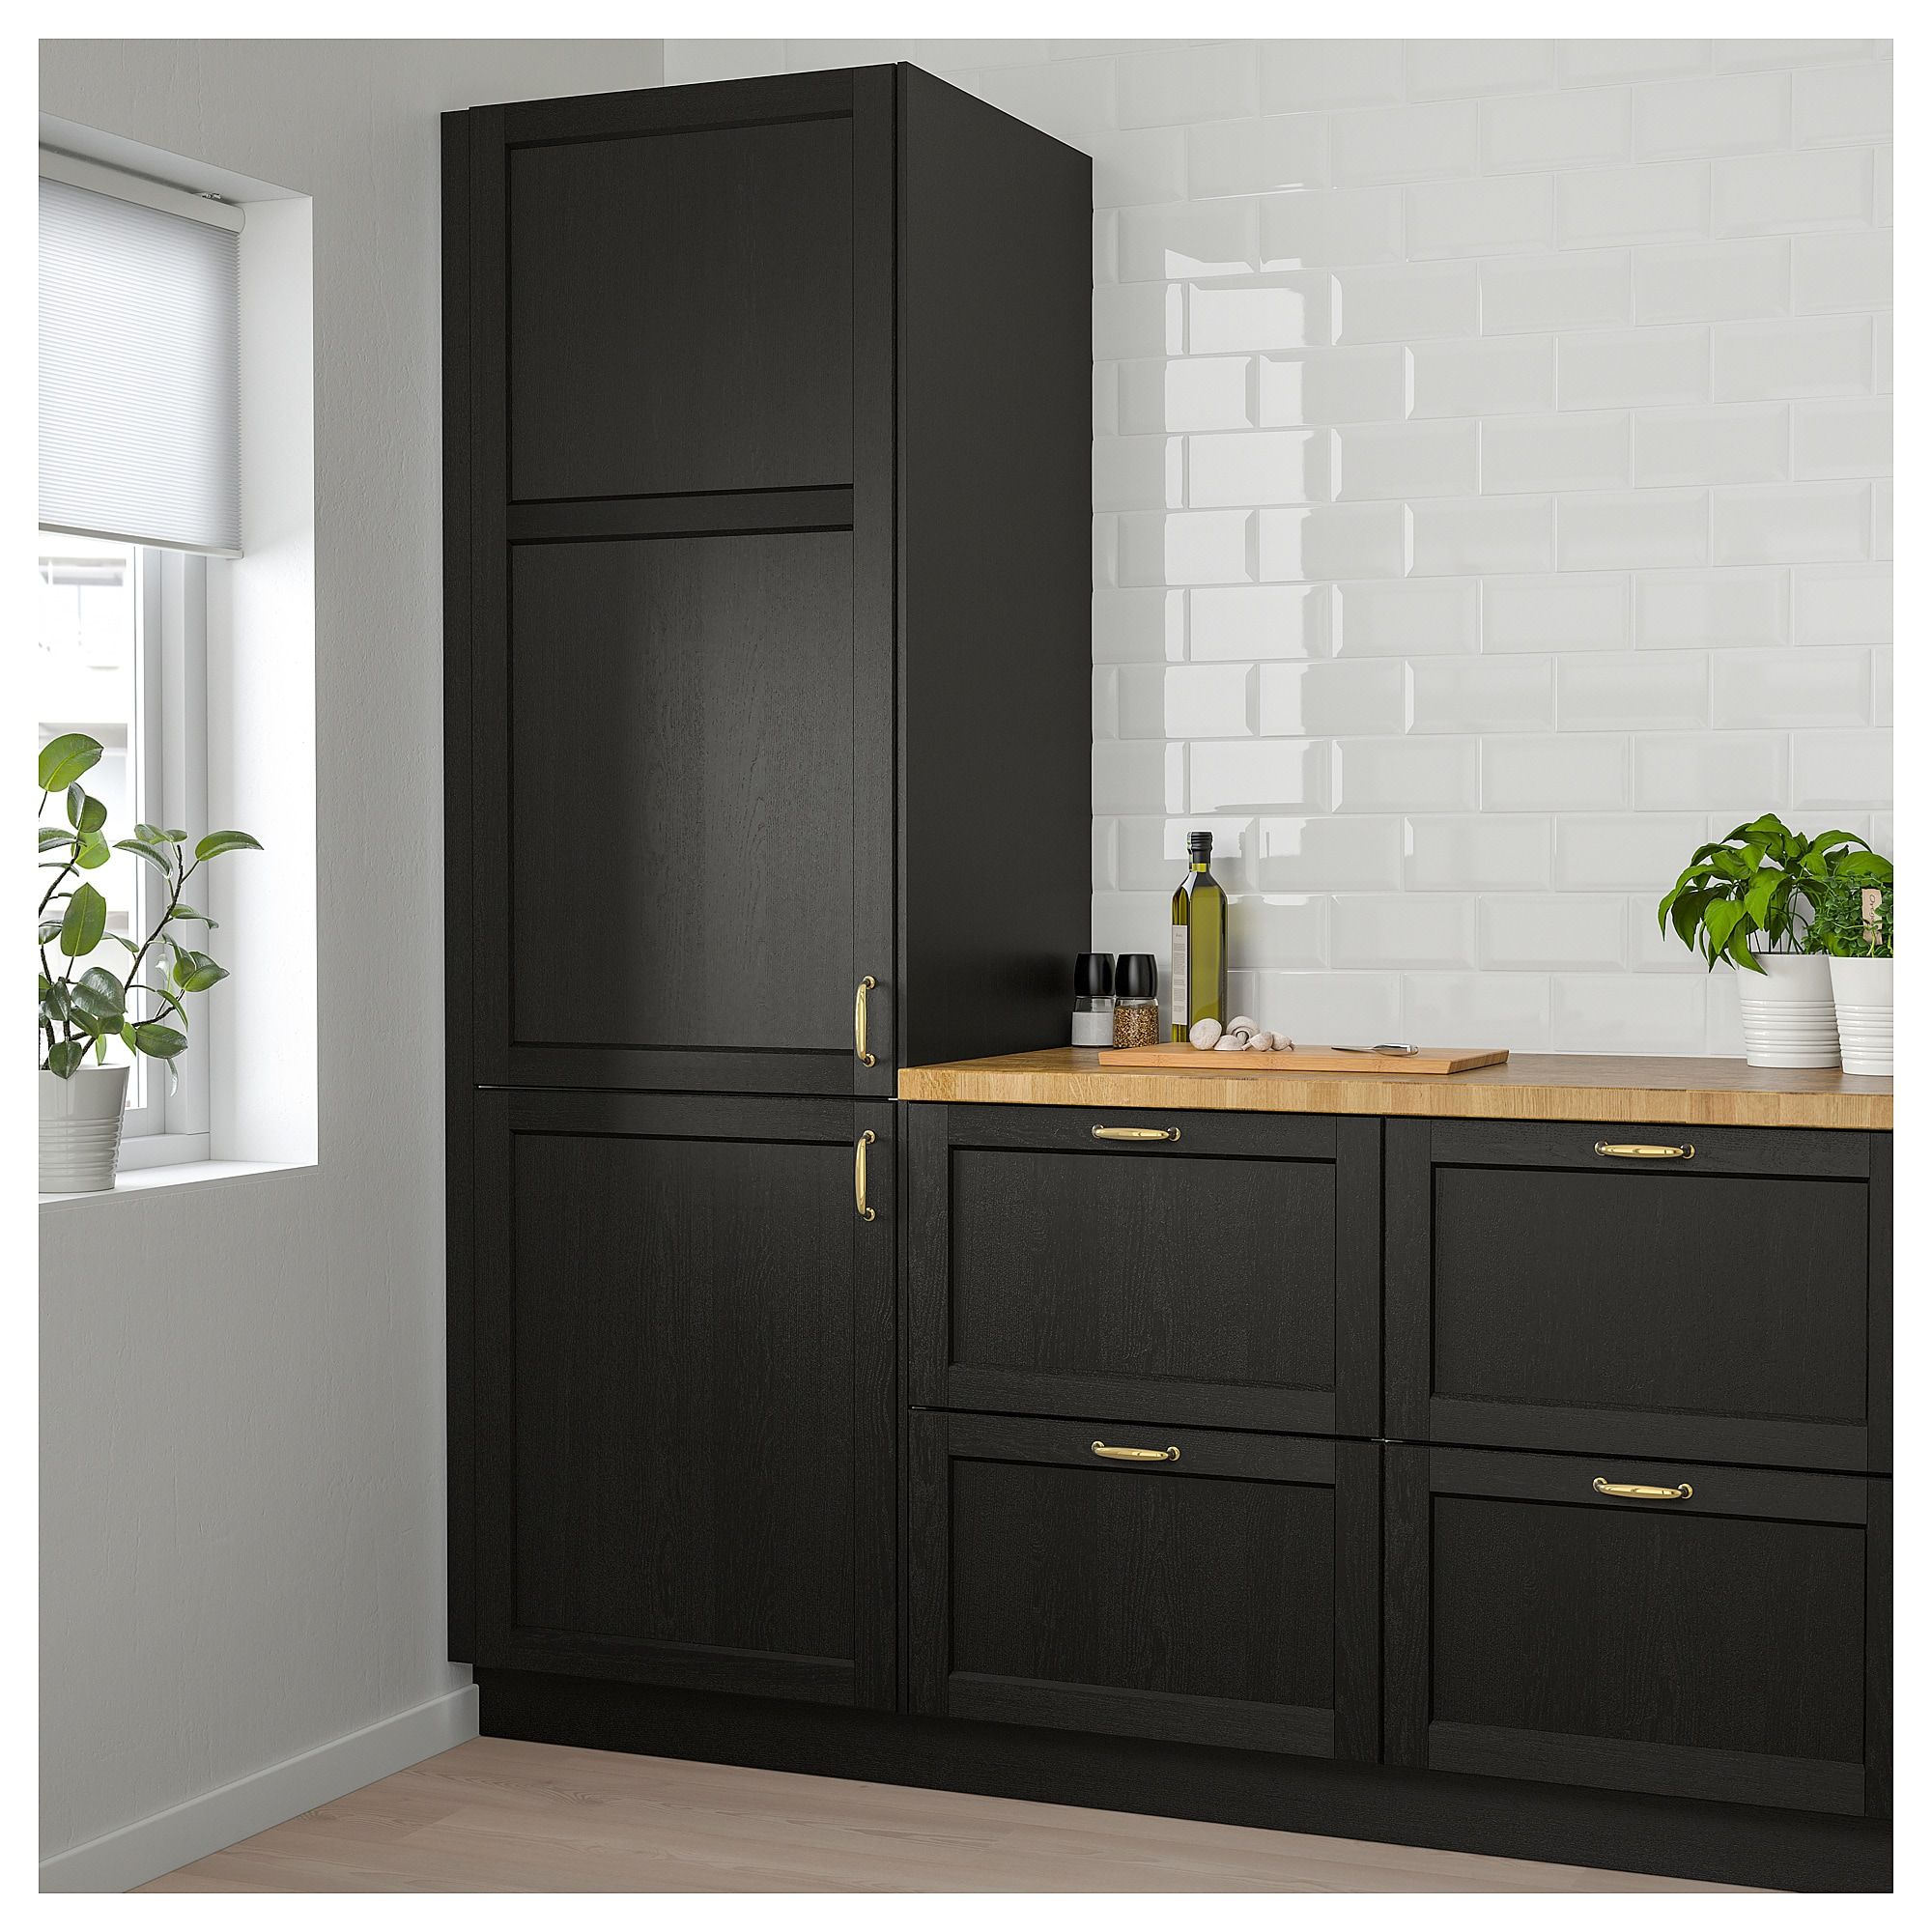 Best Lerhyttan Door Black Stained Kitchen Trends Kitchen 400 x 300